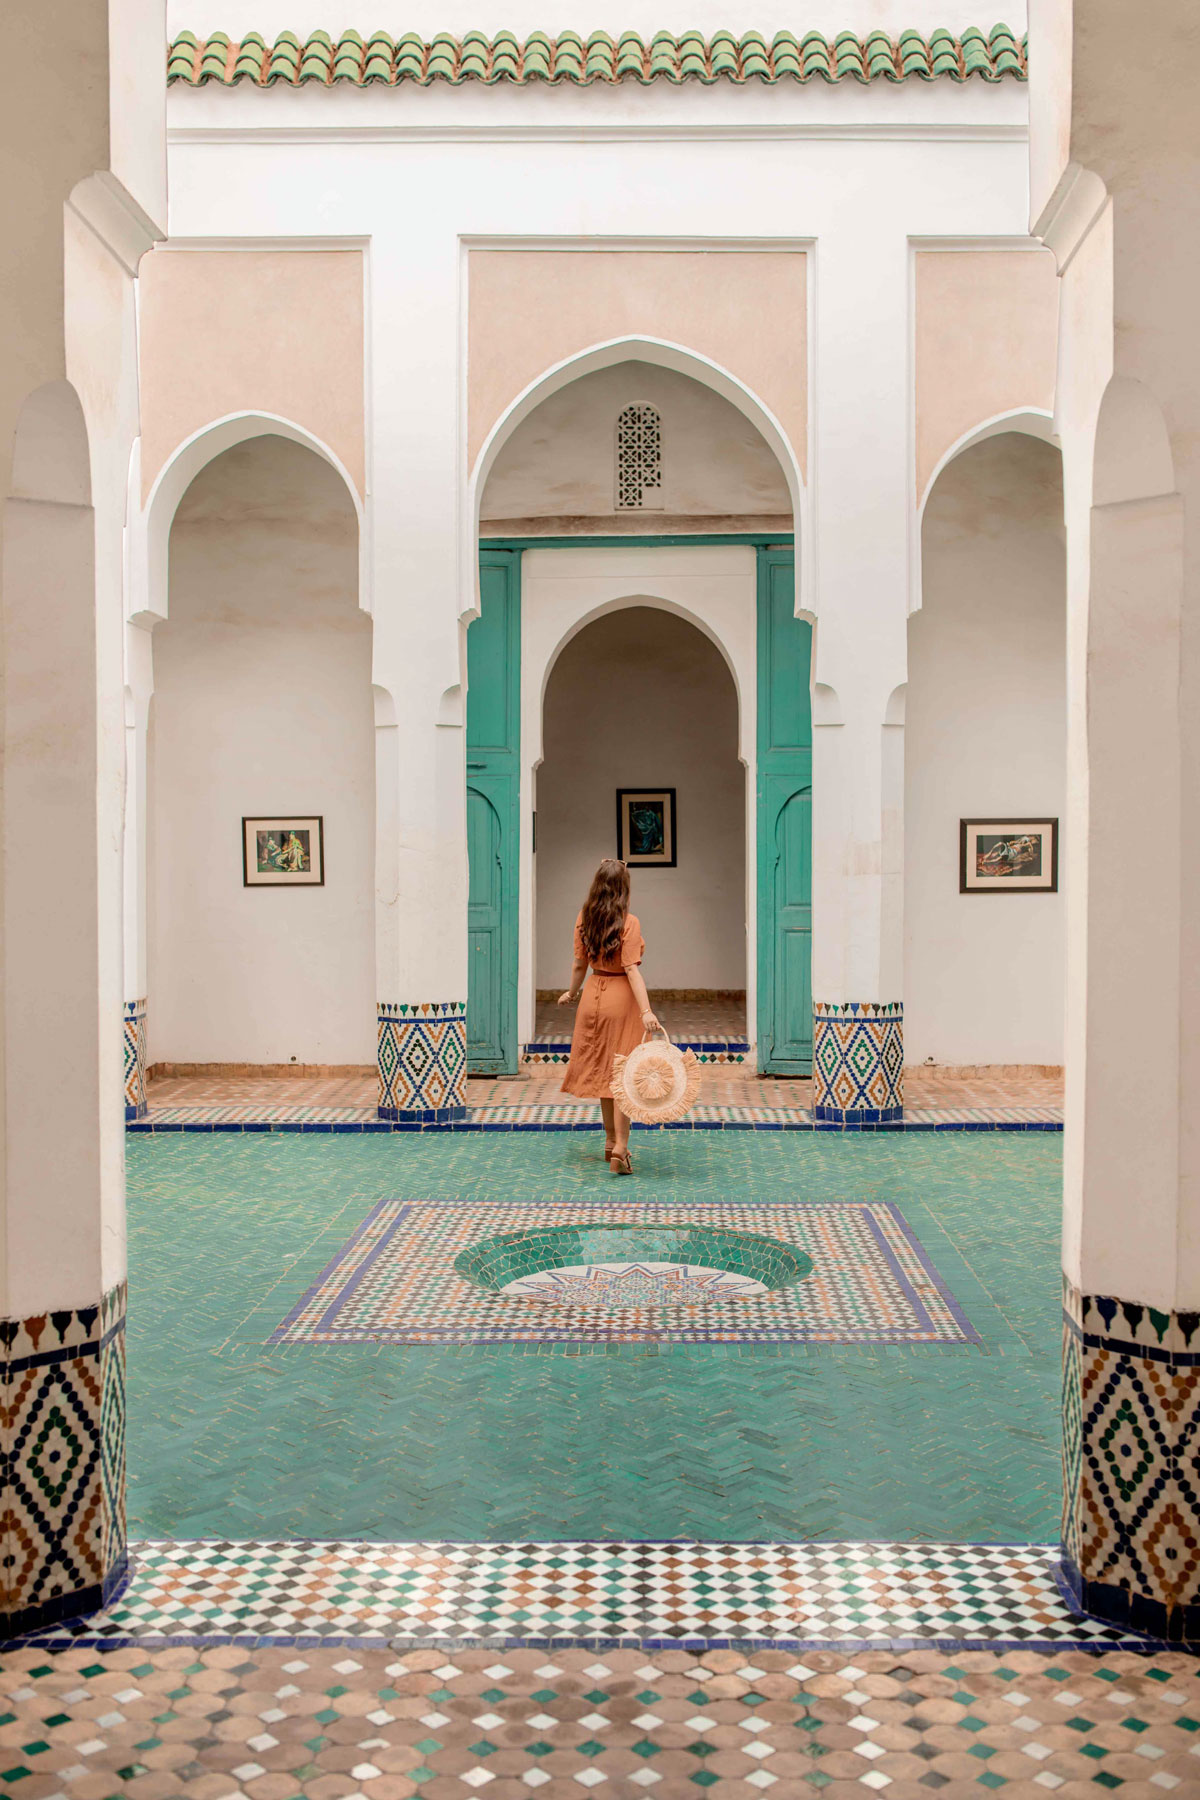 1-Top-things-to-do-in-marrakech-Bucket-list-kelseyinlondon-Kelsey-Heinrichs--What-to-do-in-marrakech--Where-to-go-in-marrakech-top-places-in-marrakech-museum